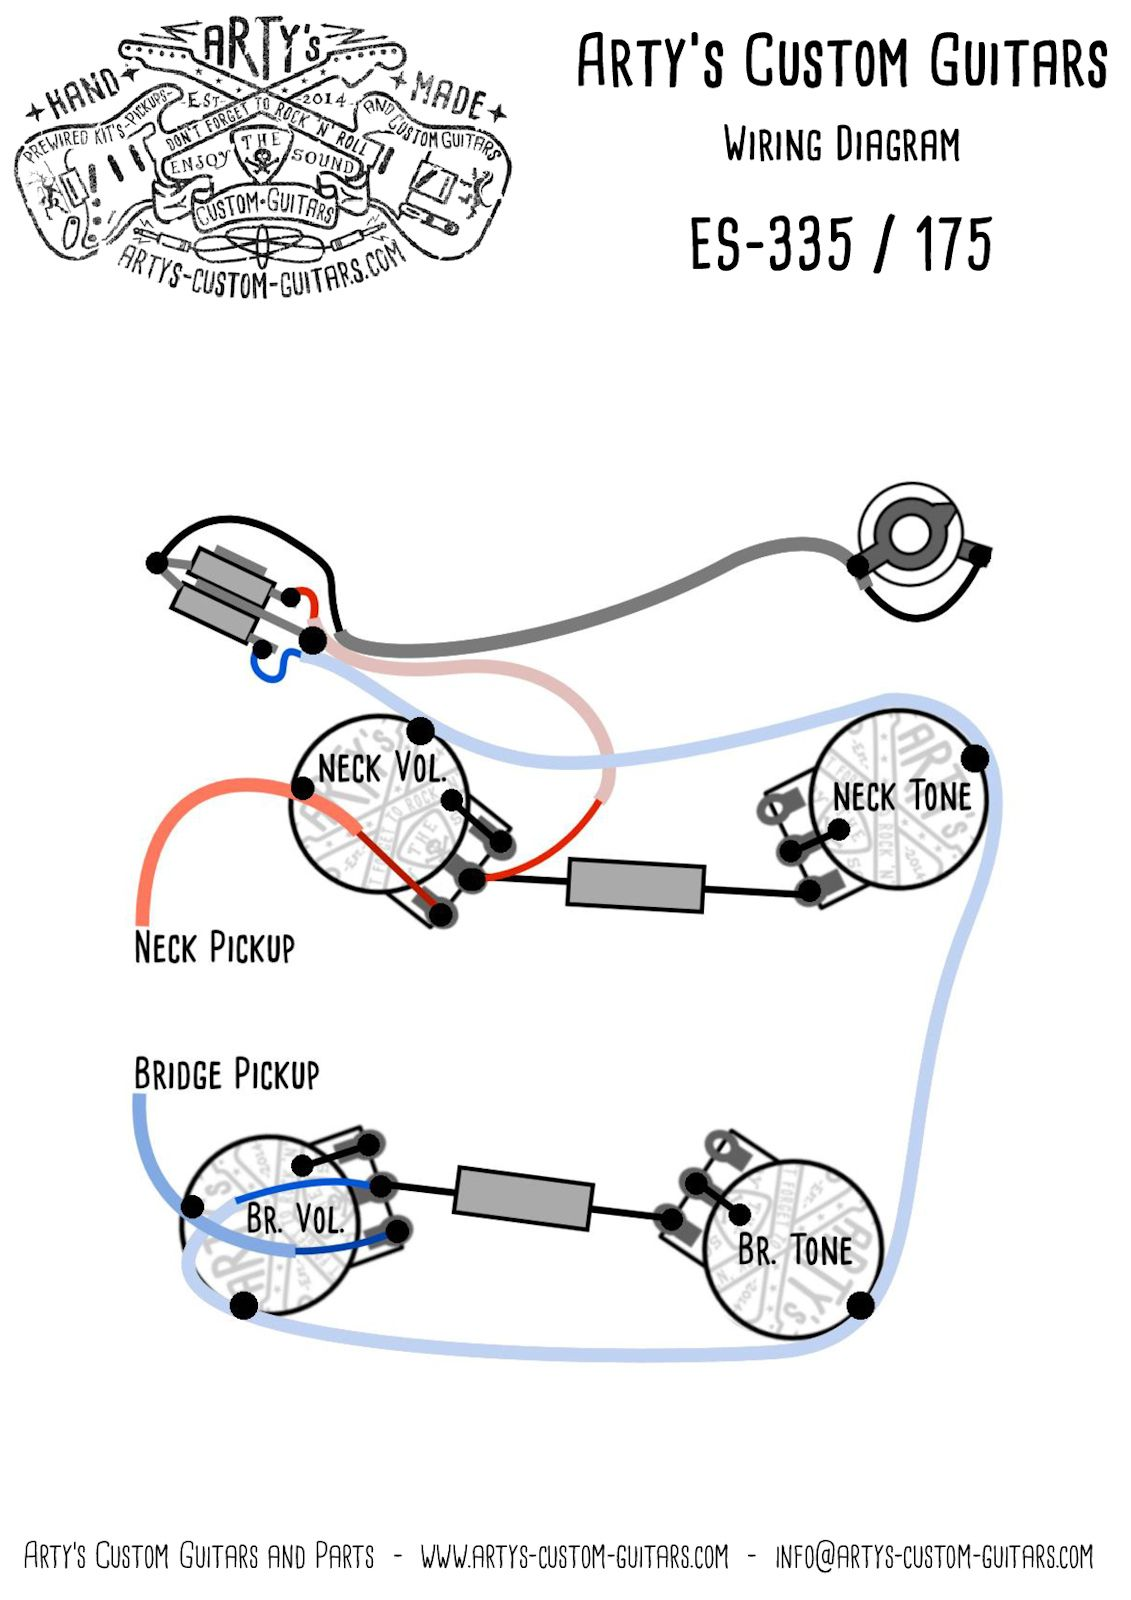 Wrg Gibson Guitar Wiring Diagram